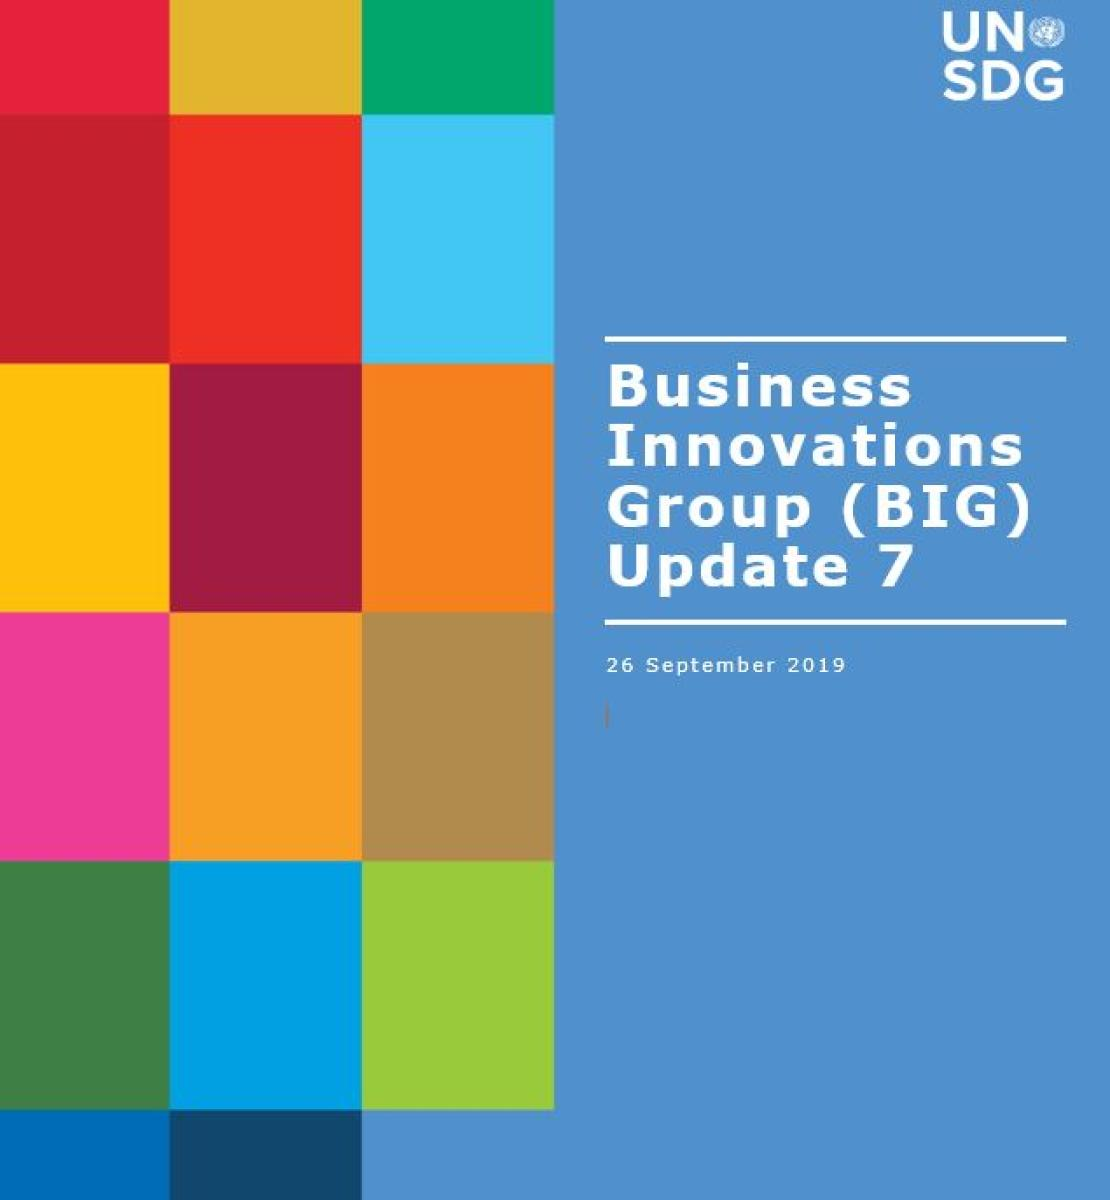 Cover shows BIG Update 7 title against a solid background by a grid of colourful rectangle grid.